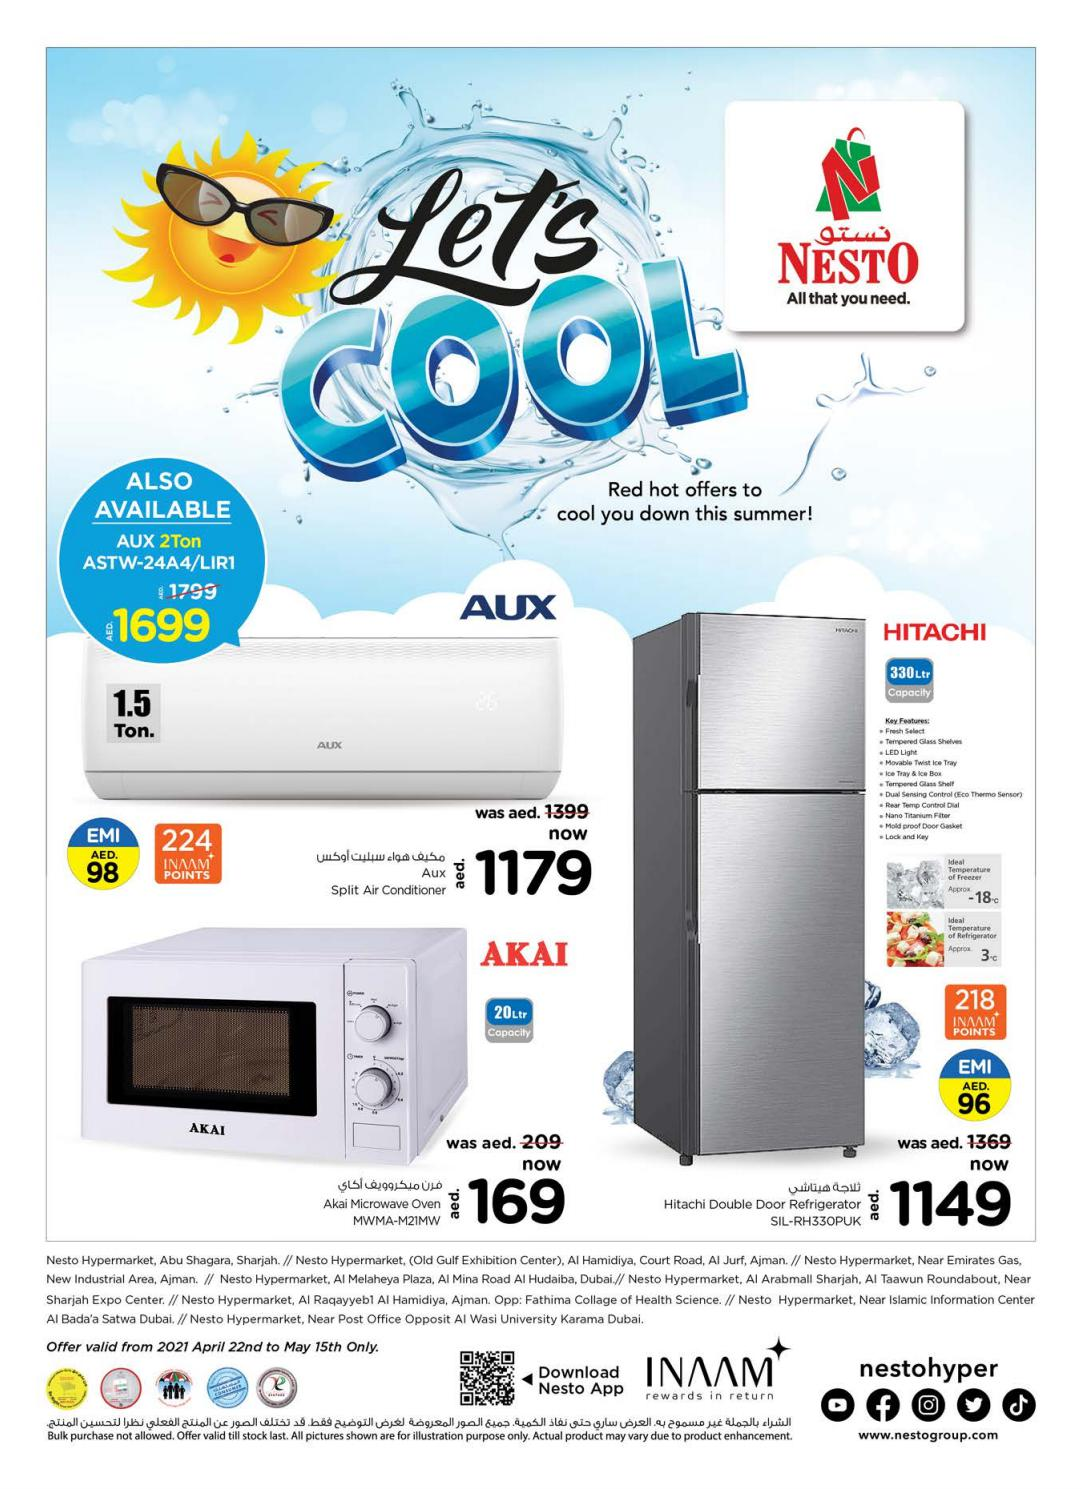 Nesto Hypermarket Cool Offers Deals